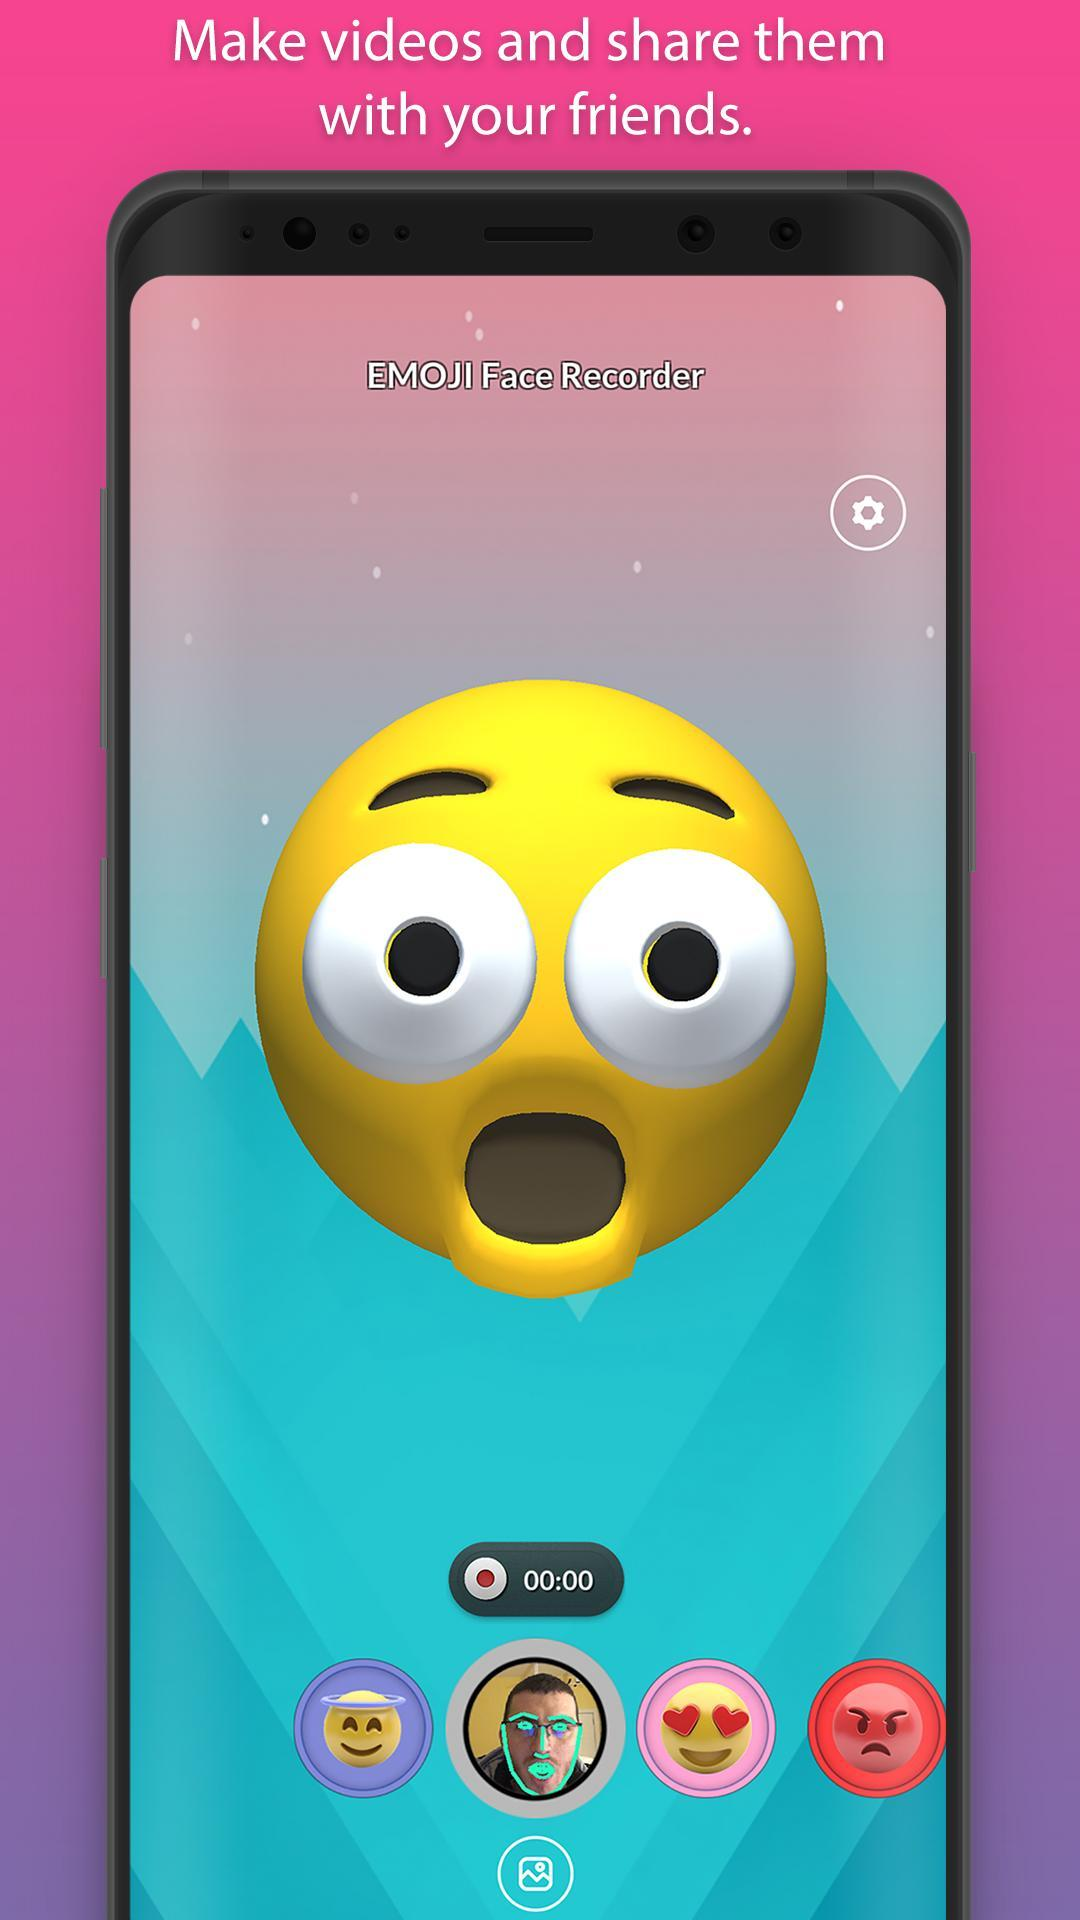 EMOJI Face Recorder app for Android download 2019